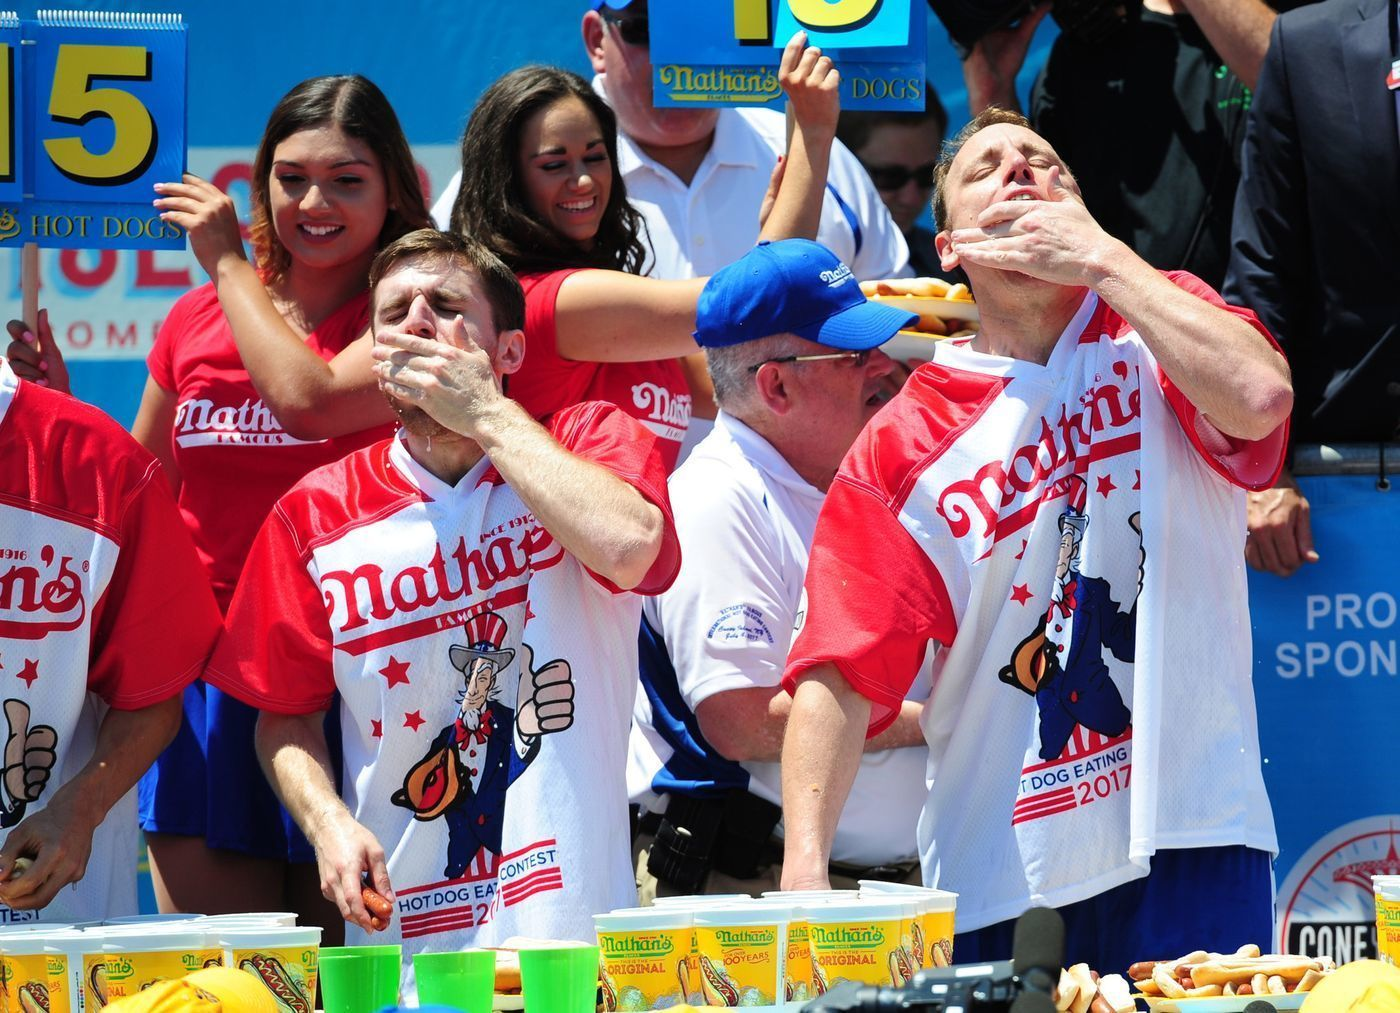 Your Body After 70 Hot Dogs: Competitors and Doctors Dish on Nathan's Contest Side Effects